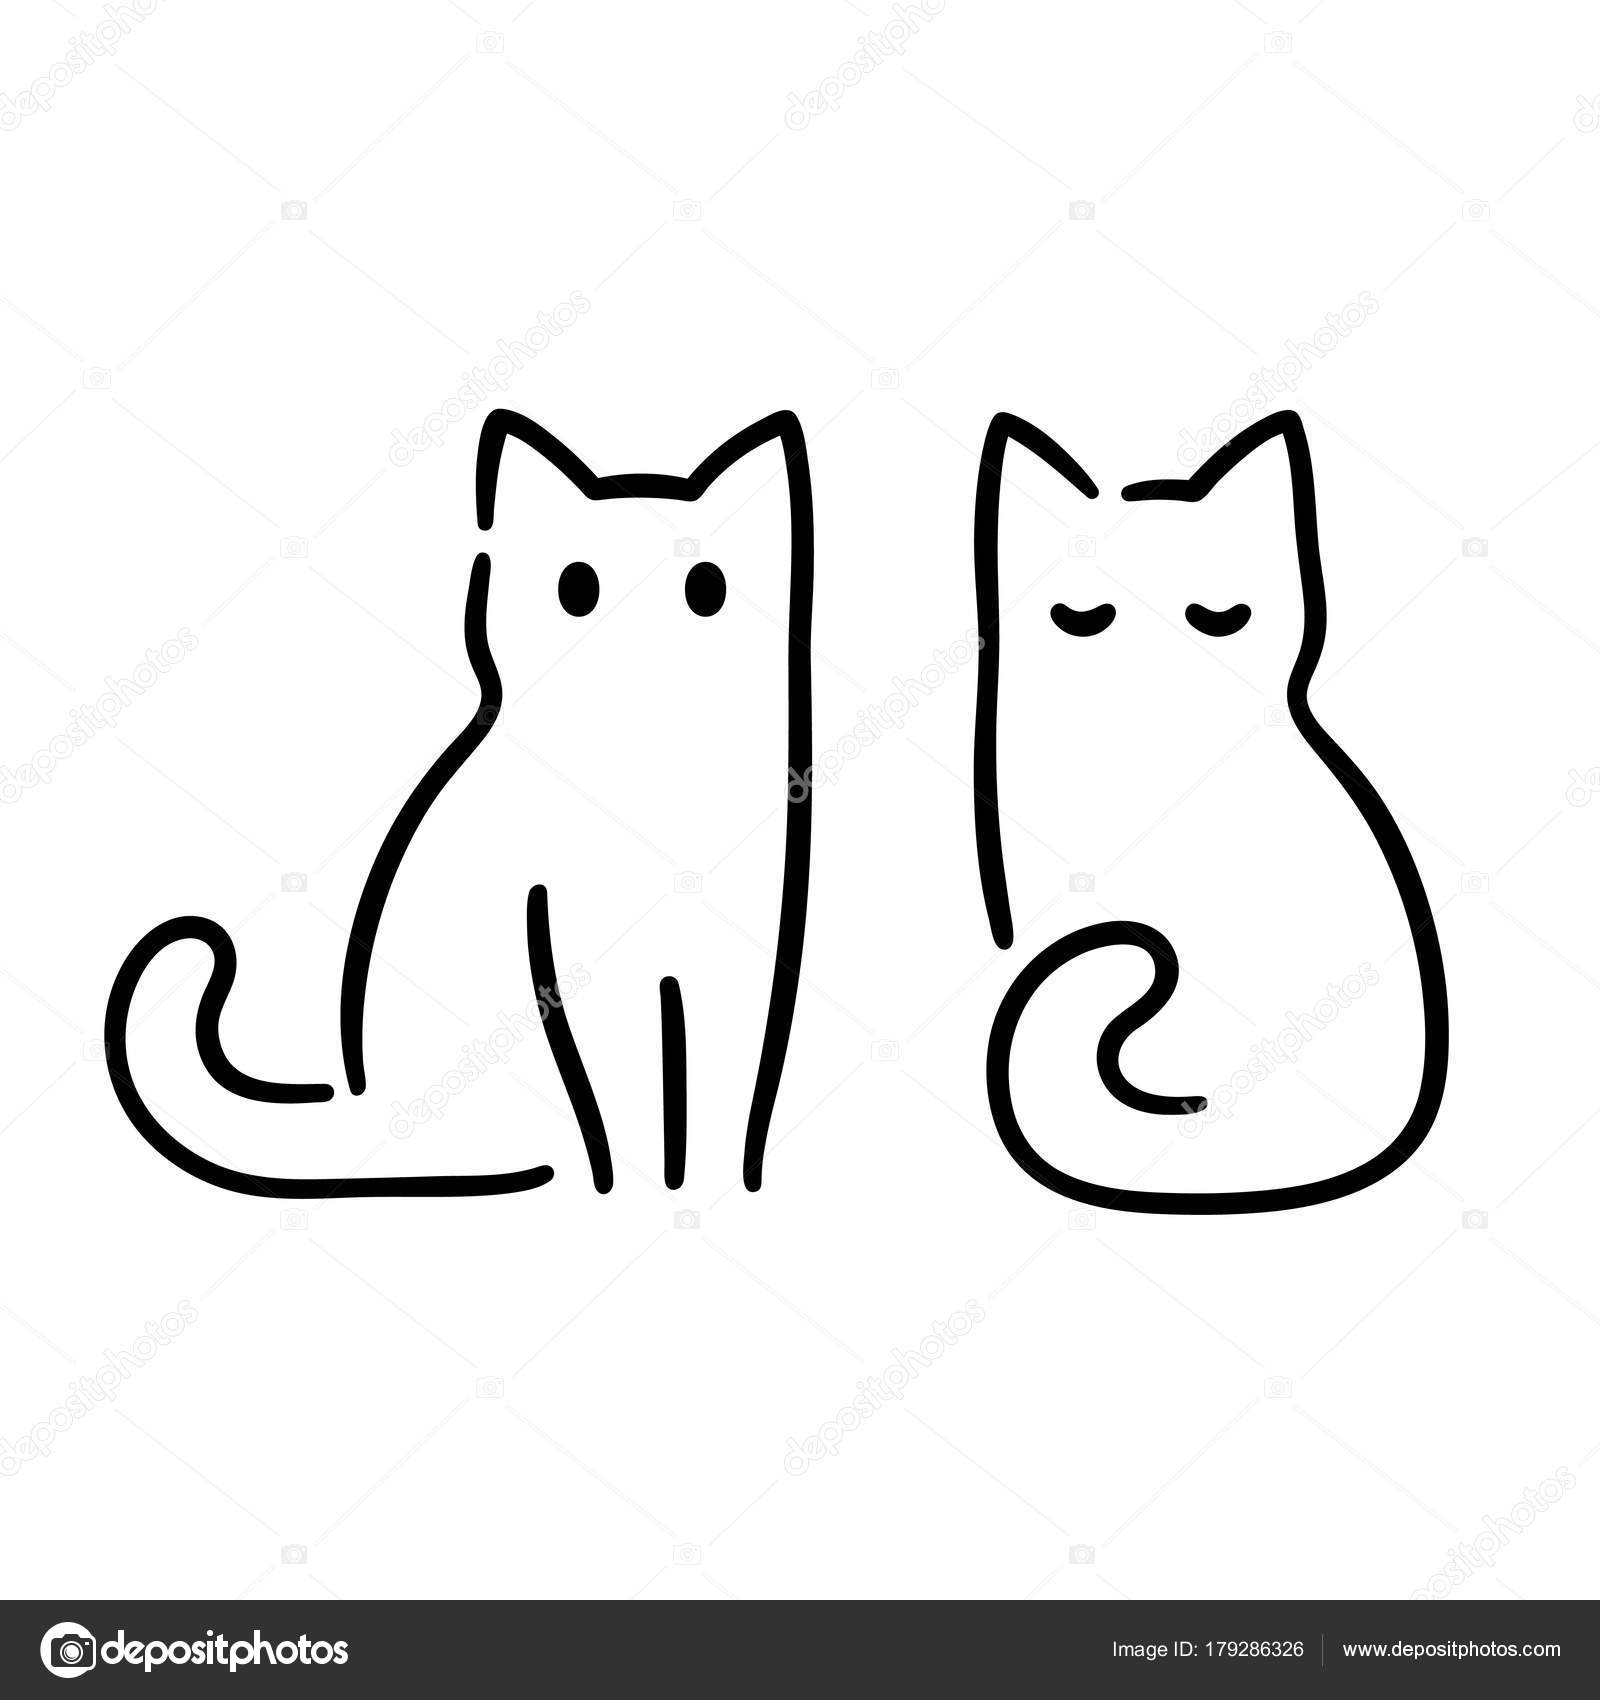 Pictures Cat Drawing Minimal Cat Drawing Stock Vector C Sudowoodo 179286326